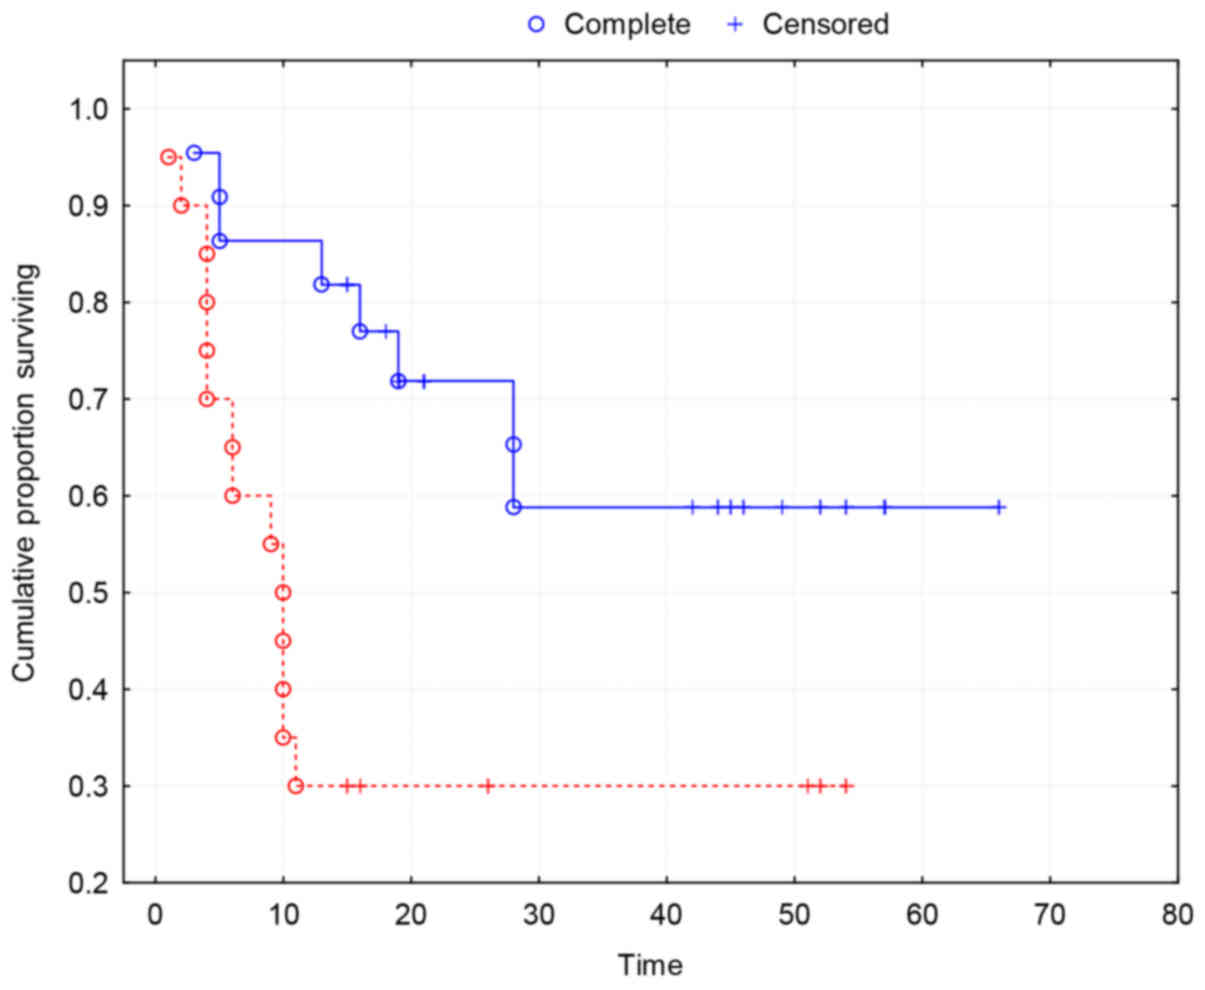 ef50846548 ... a strong association between MVD and the two-year survival (P 0.0035).  Group 0 (red line)